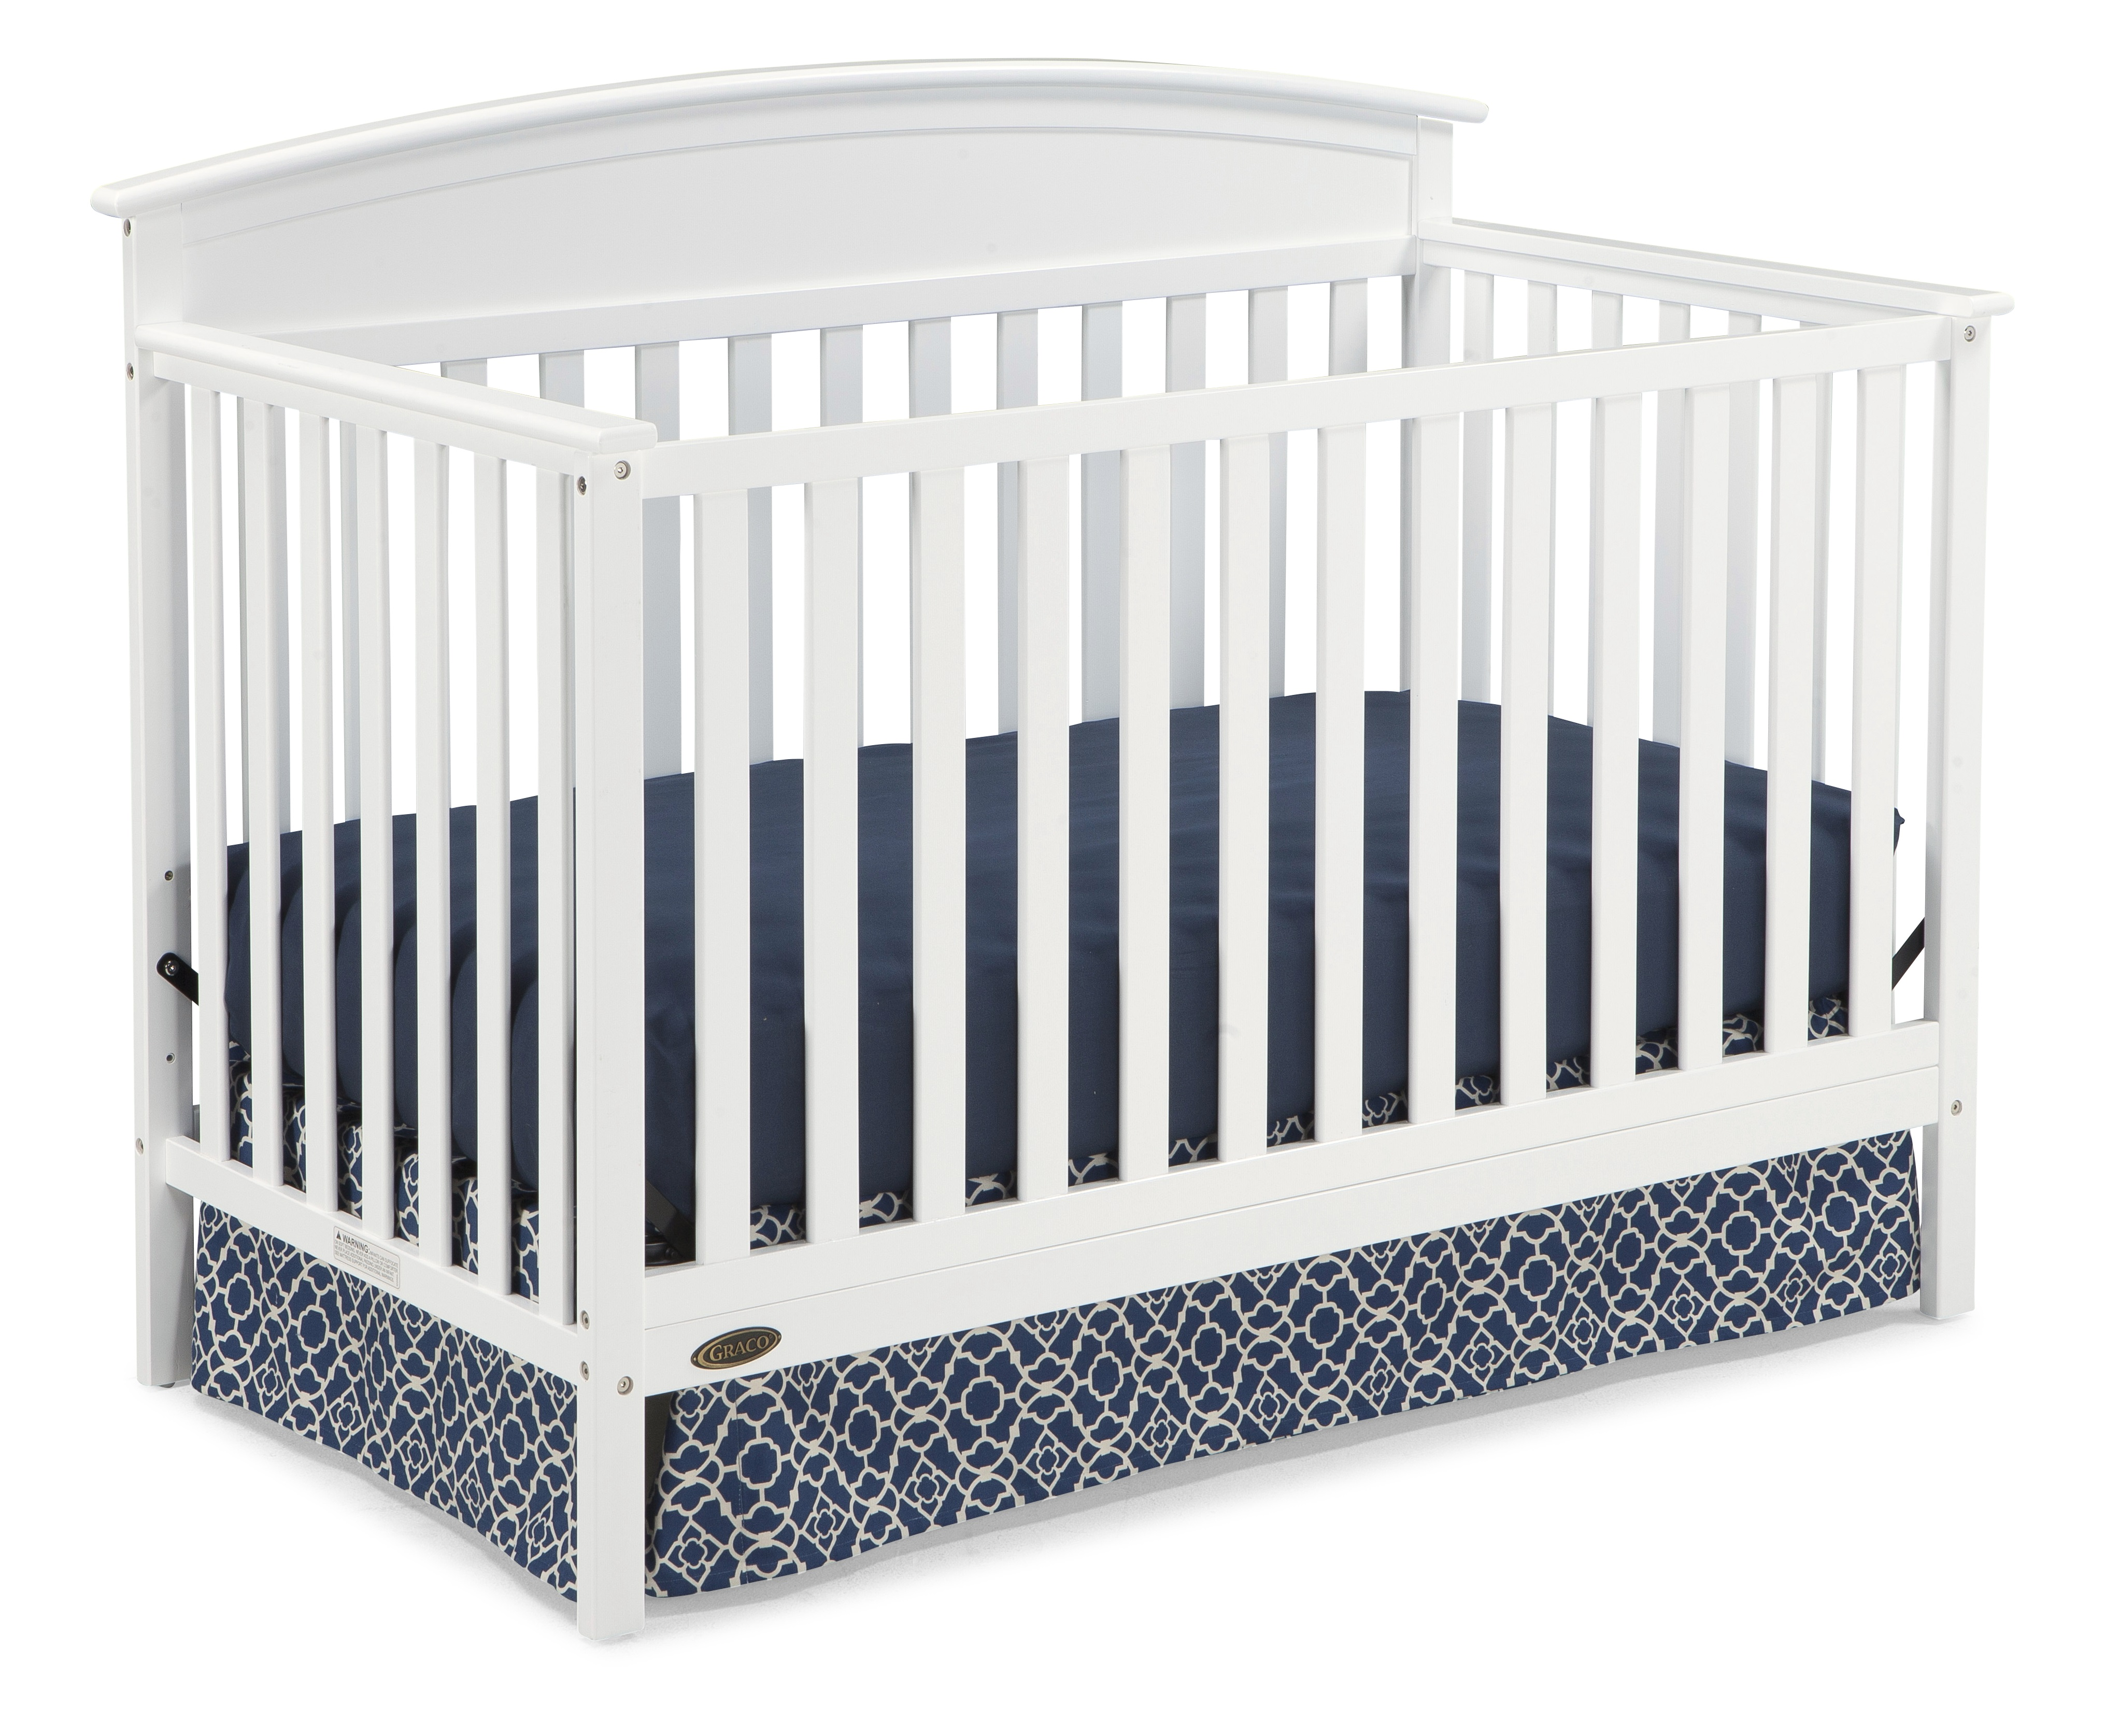 Graco Benton 5 In 1 Convertible Crib White